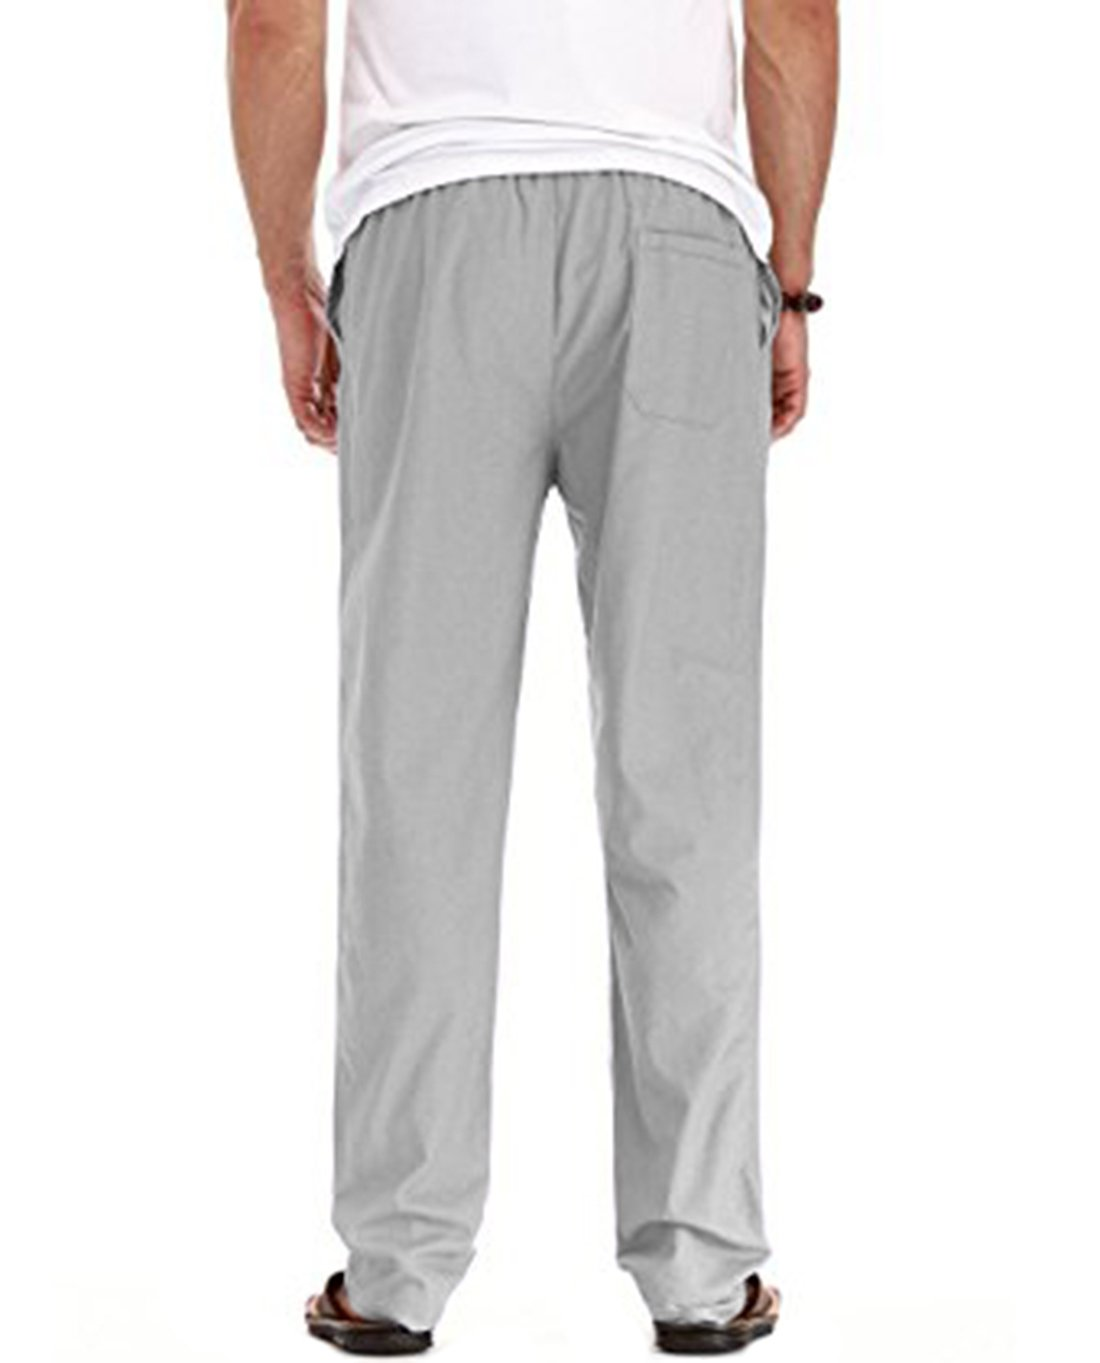 SIR7 Men's Linen Casual Lightweight Drawstrintg Elastic Waist Summer Beach Pants Light Grey 2L by SIR7 (Image #3)